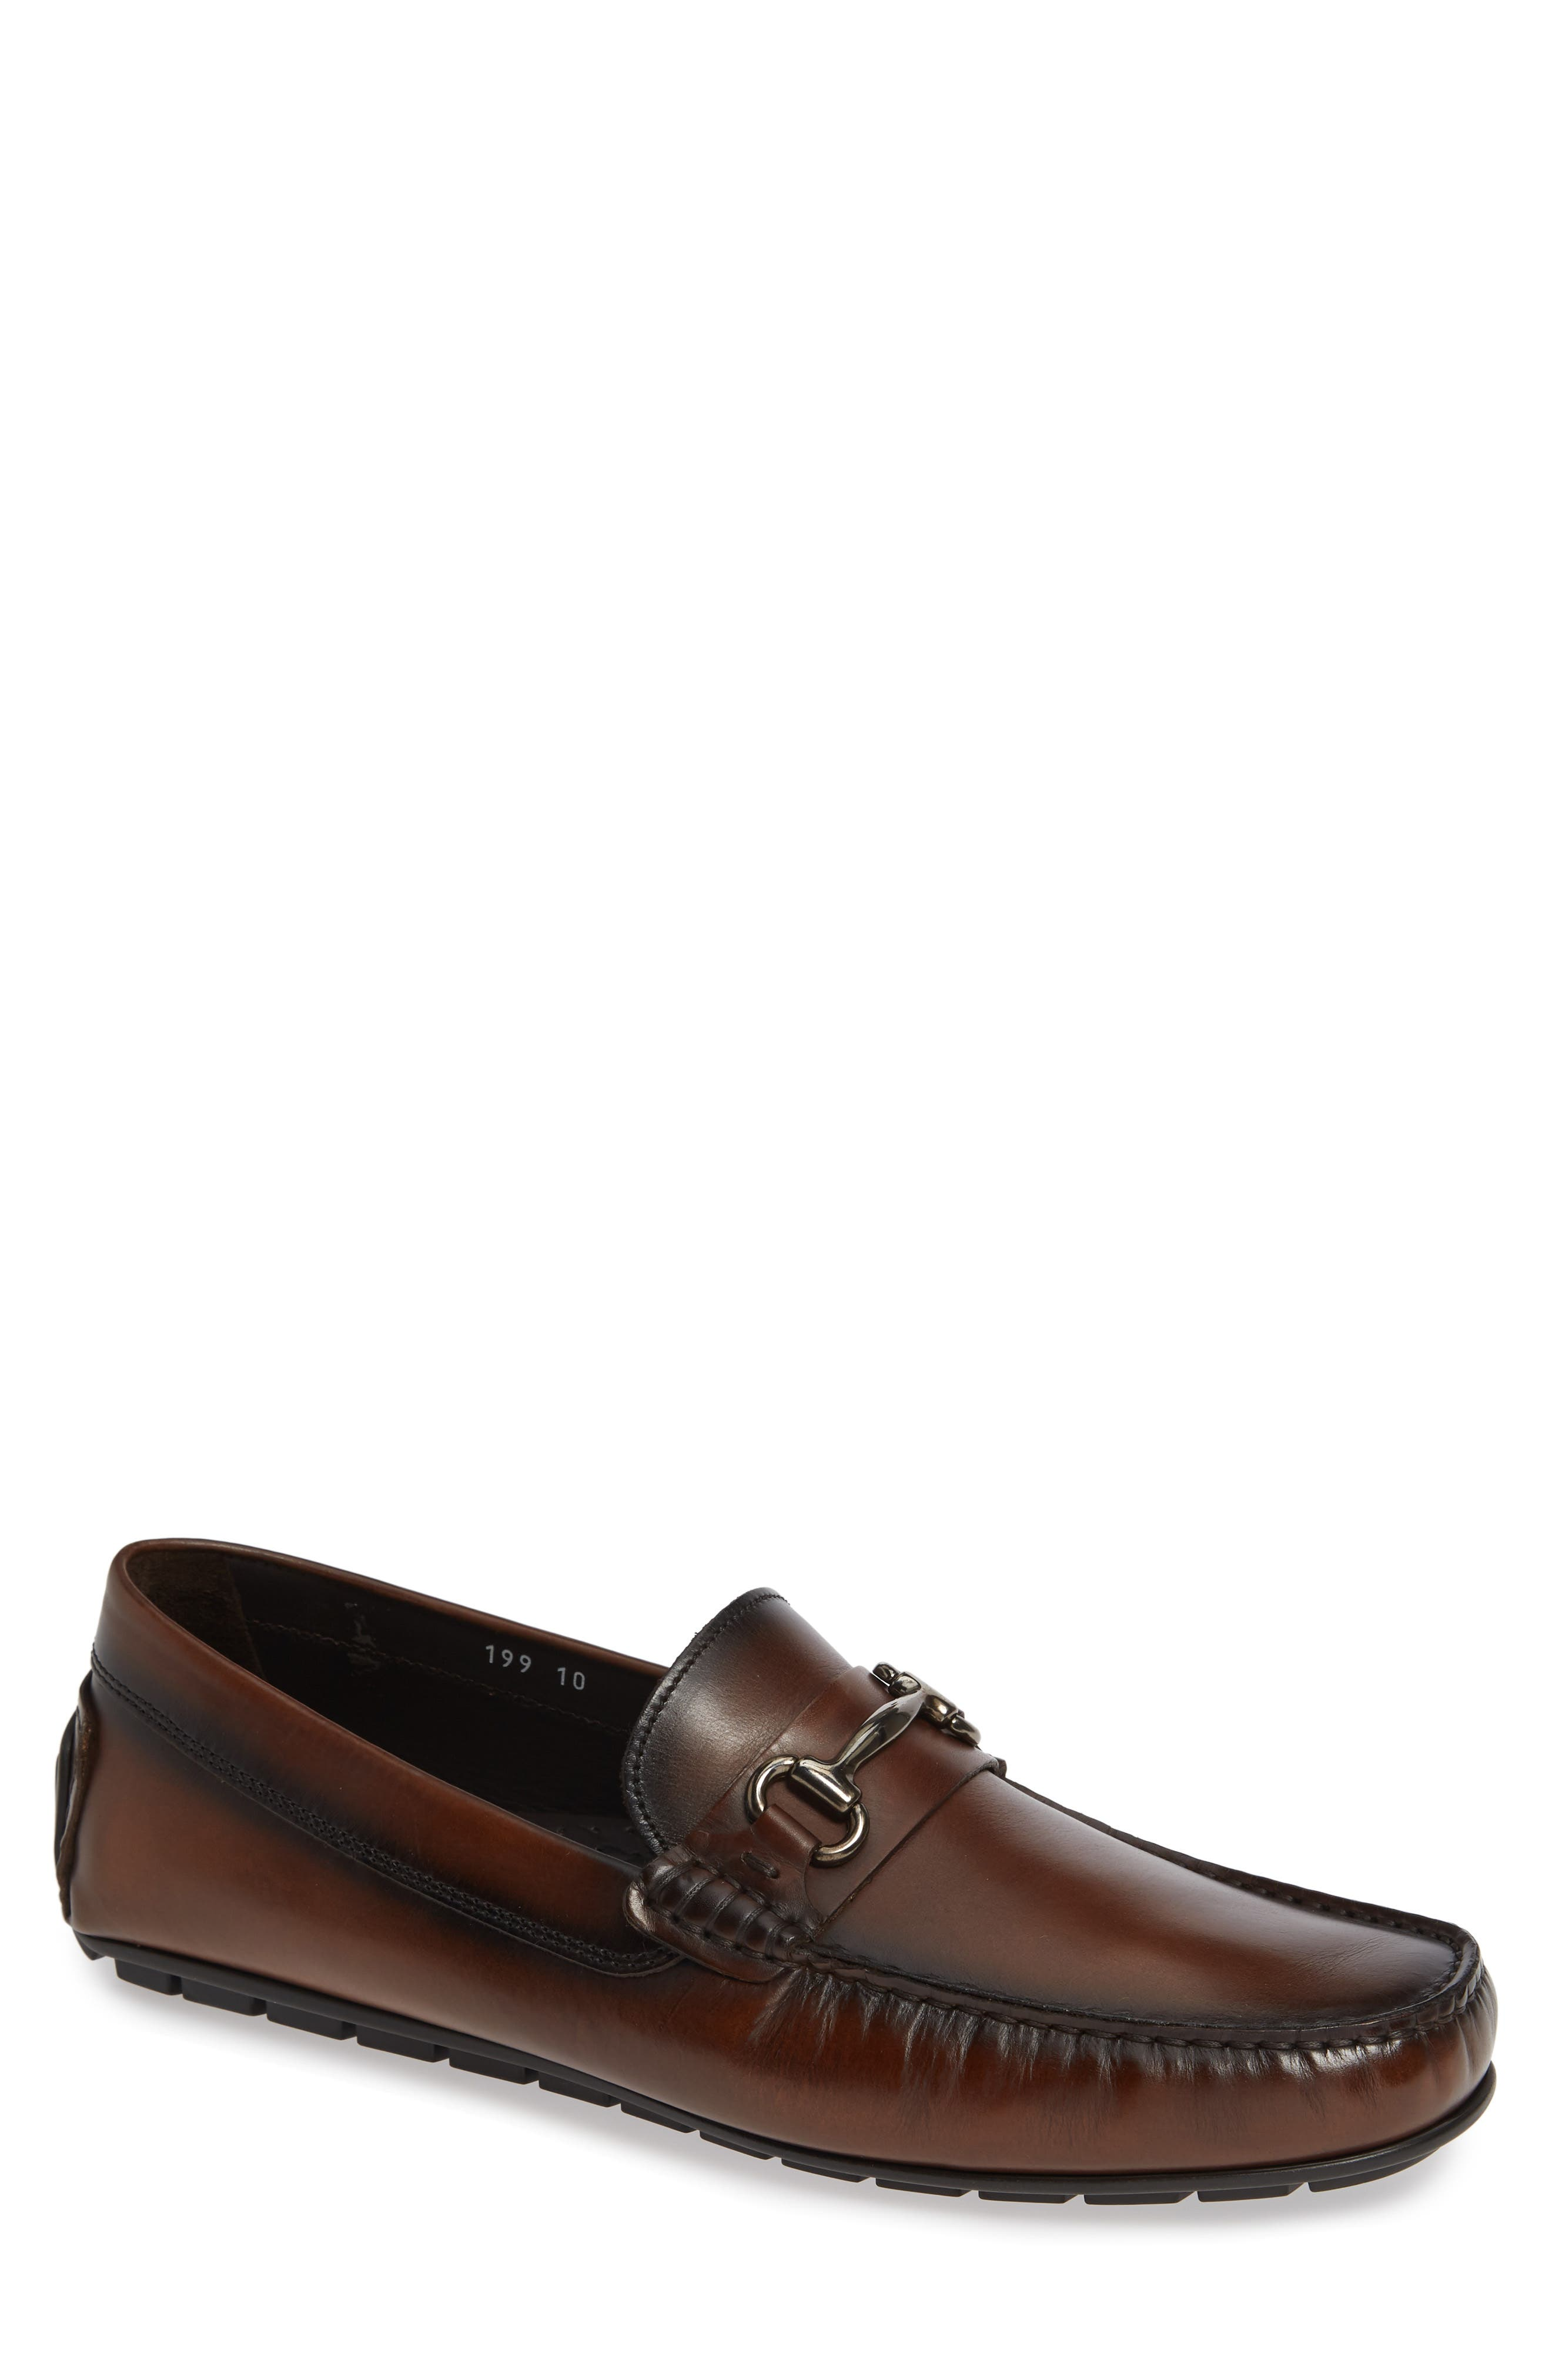 Del Amo Driving Shoe,                         Main,                         color, BROWN LEATHER